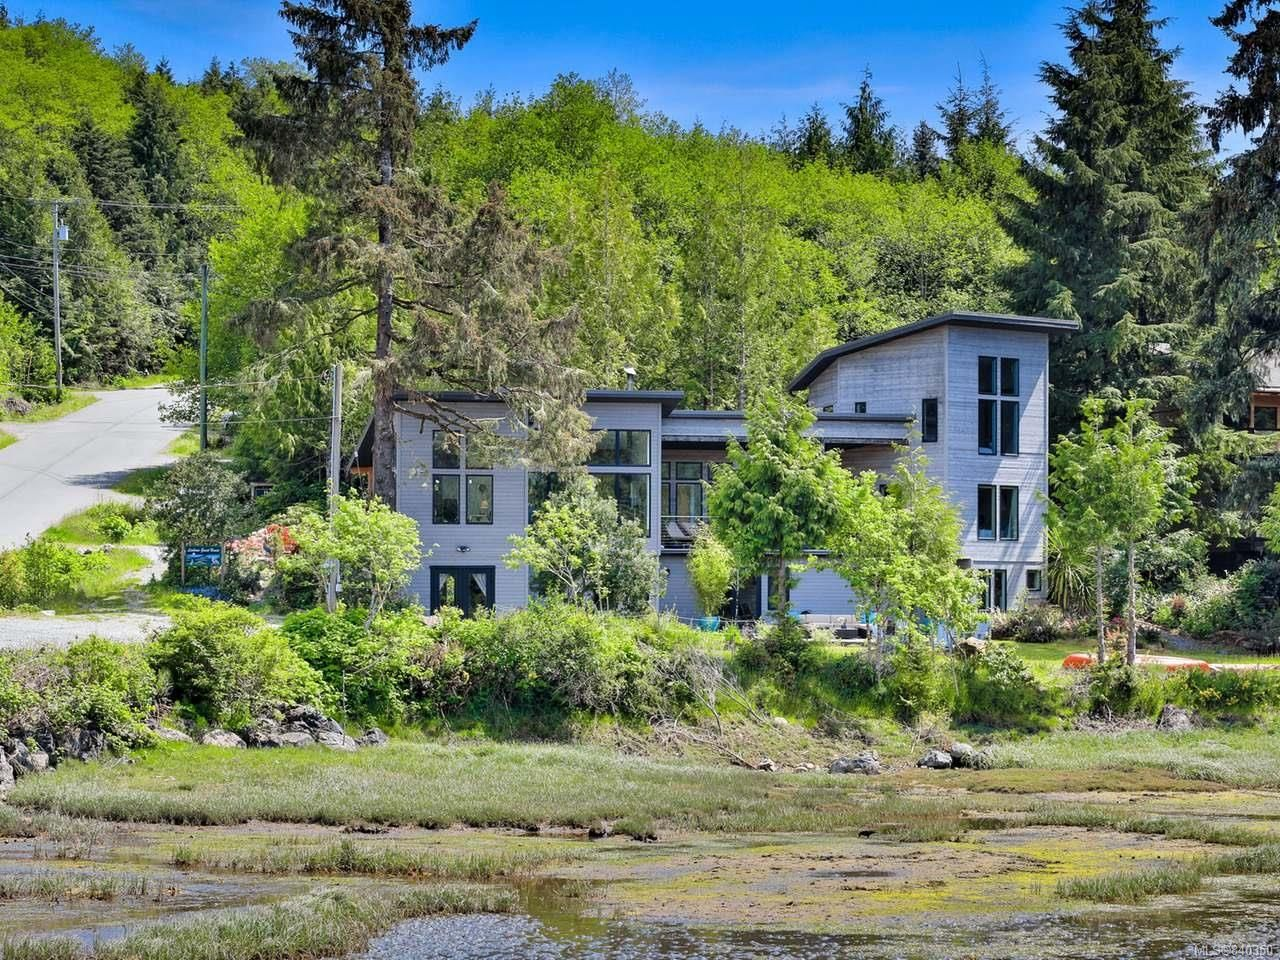 Photo 72: Photos: 1068 Helen Rd in UCLUELET: PA Ucluelet House for sale (Port Alberni)  : MLS®# 840350